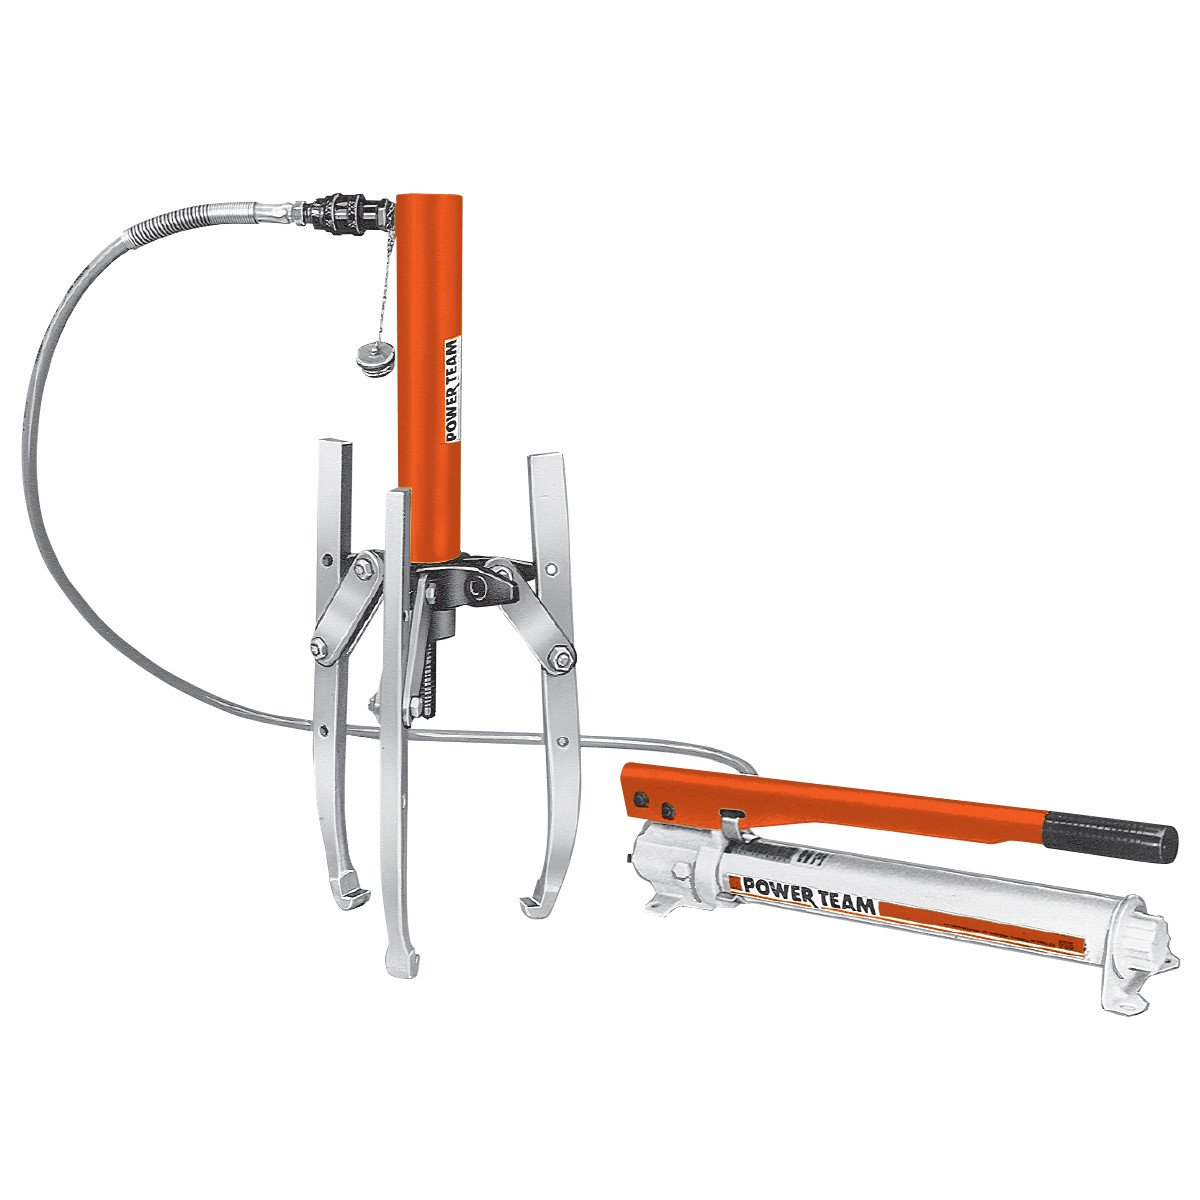 10 Ton Combination 2 Jaw 3 Jaw Hydraulic Puller Set